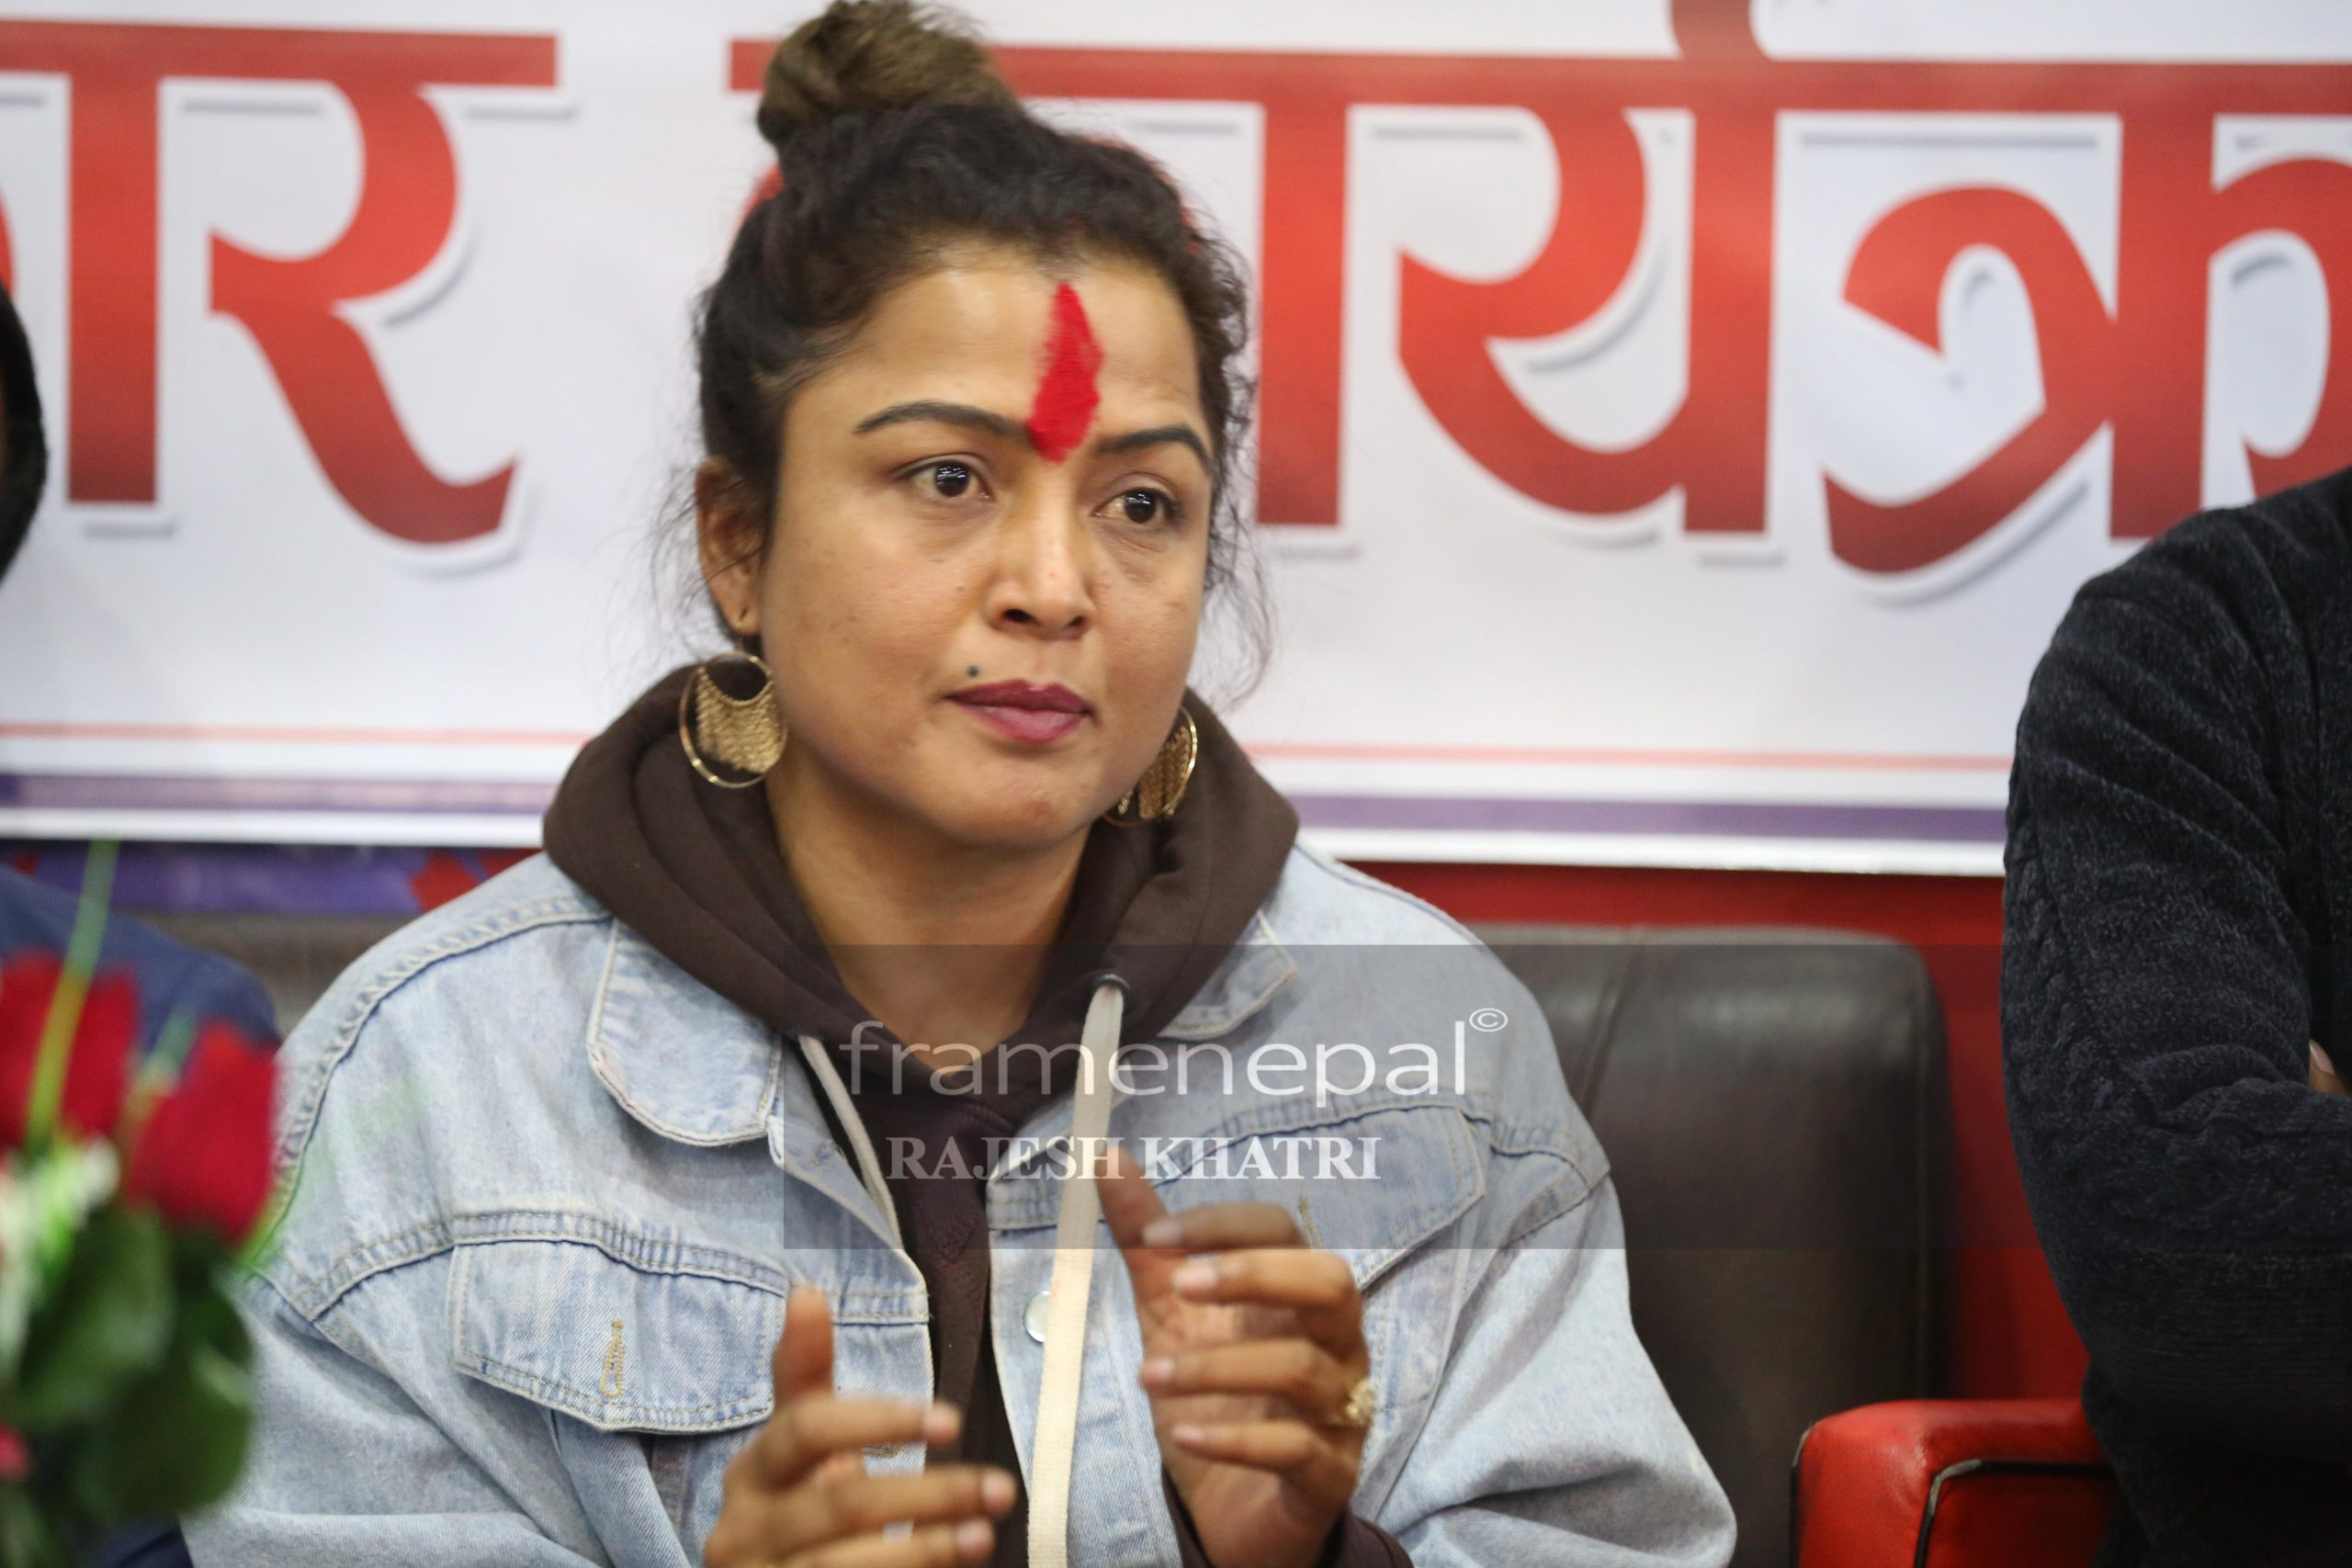 Rekha Thapa is a Nepali actress, model and film maker.